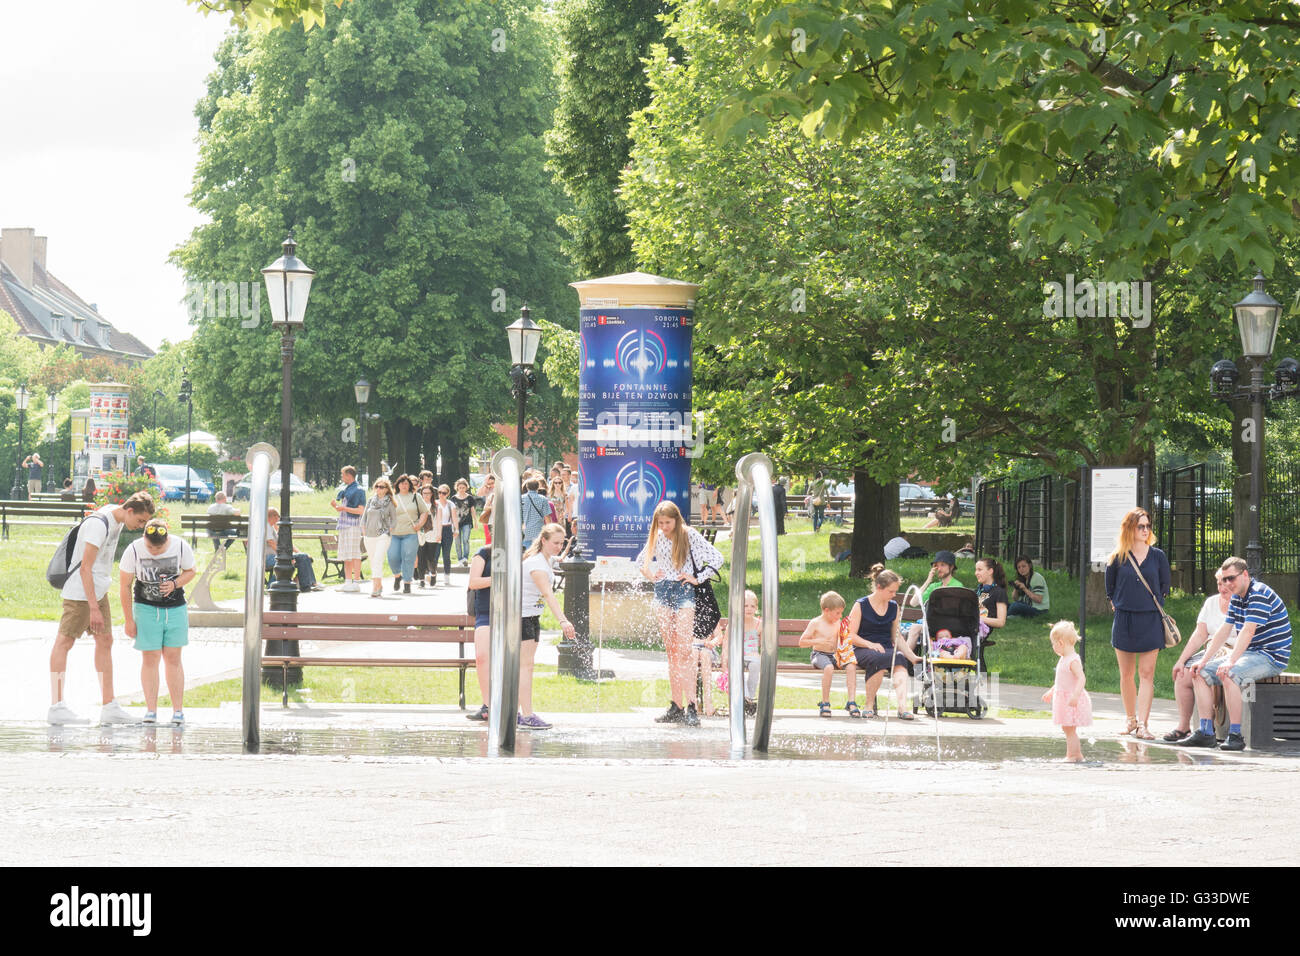 Hevelius Fountain in Jan Hevelius Square on a hot day - Gdansk, Poland, Europe - Stock Image